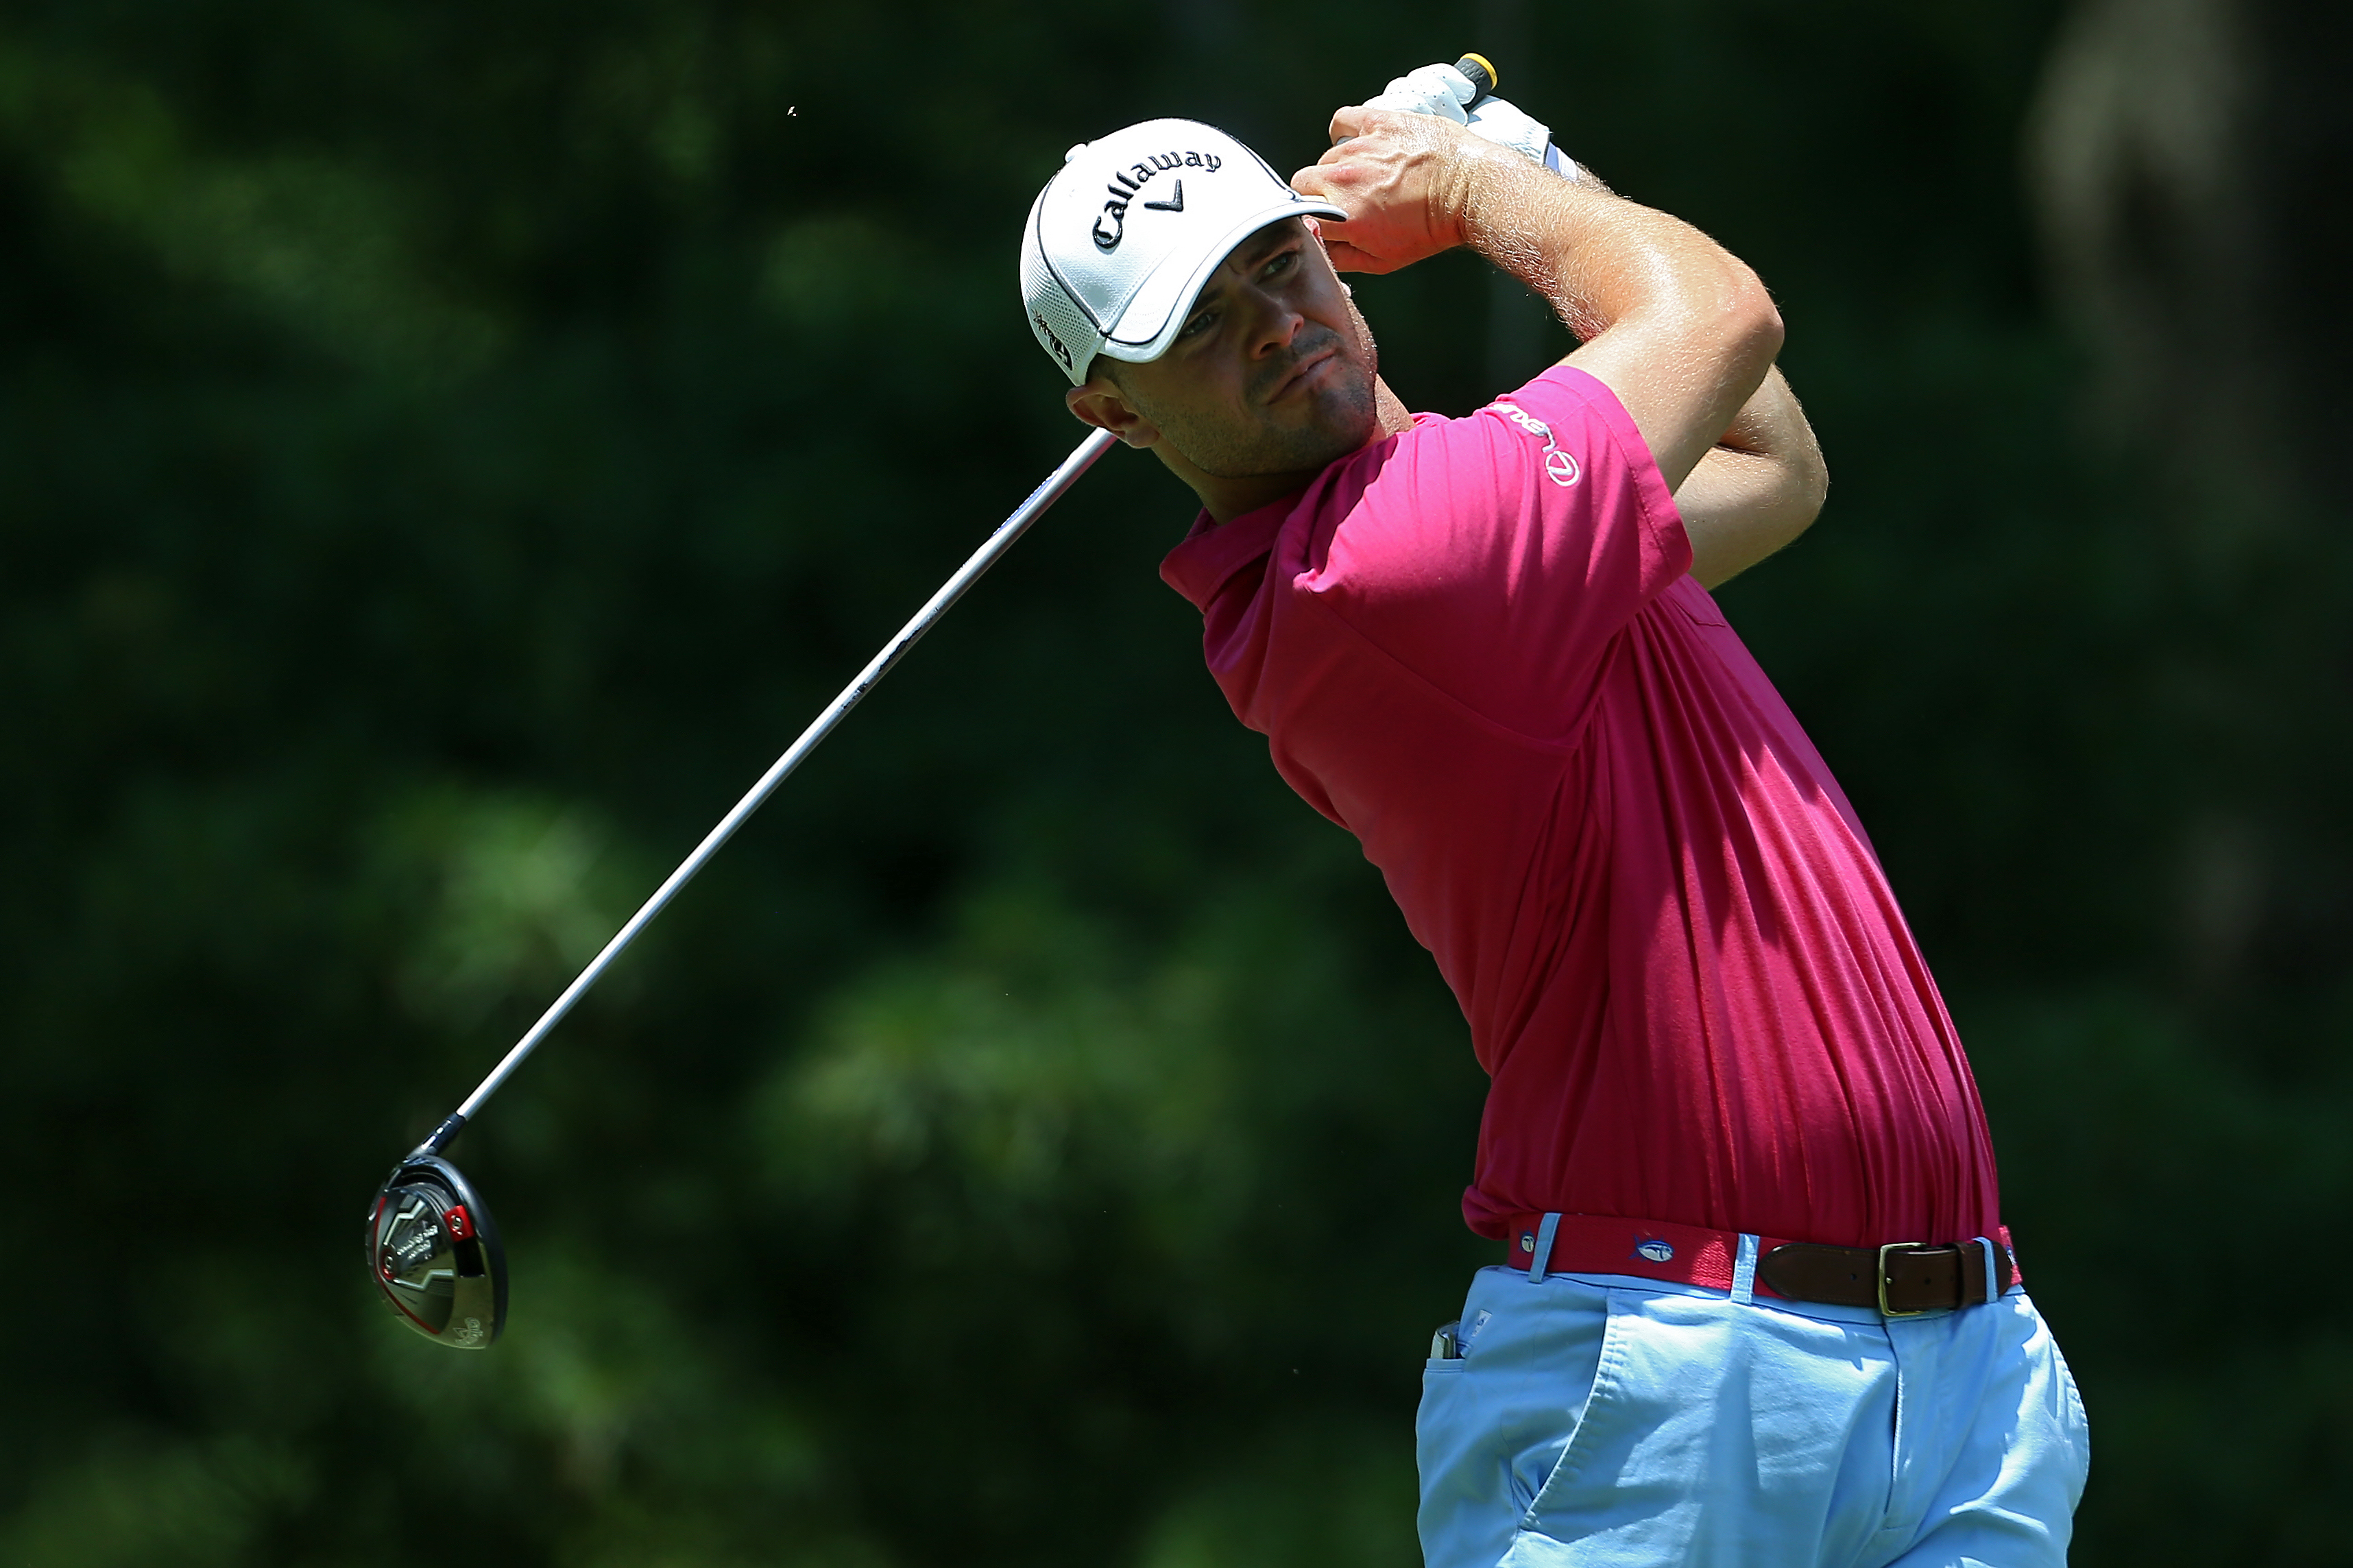 Wesley Bryan leads the Web.com Tour money list and will add to his total after making it to the weekend at Peek'n Peak. (Getty Images)